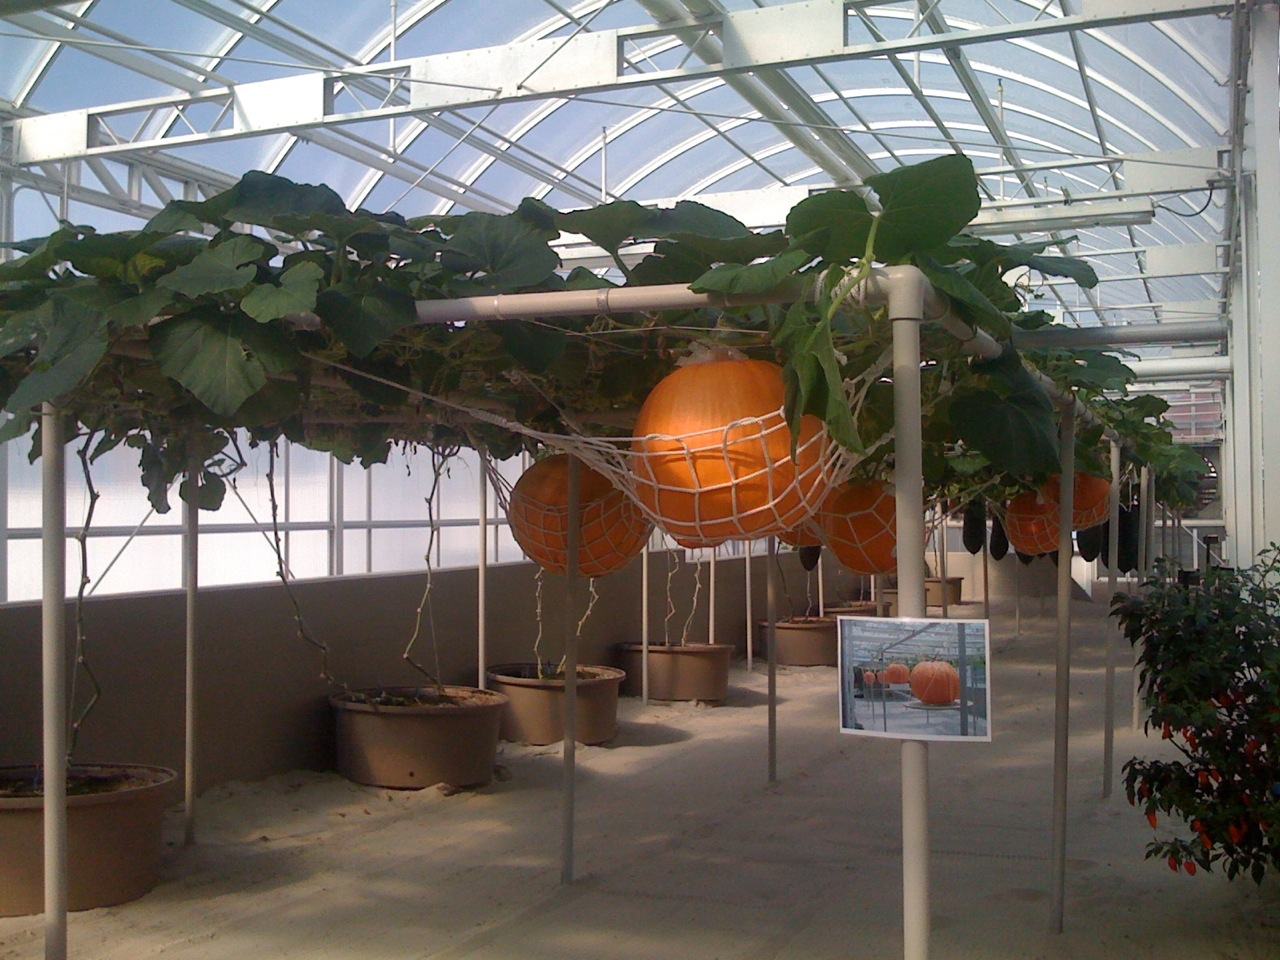 giant-pumpkins-seeds-of-life-tour-epcot-disney